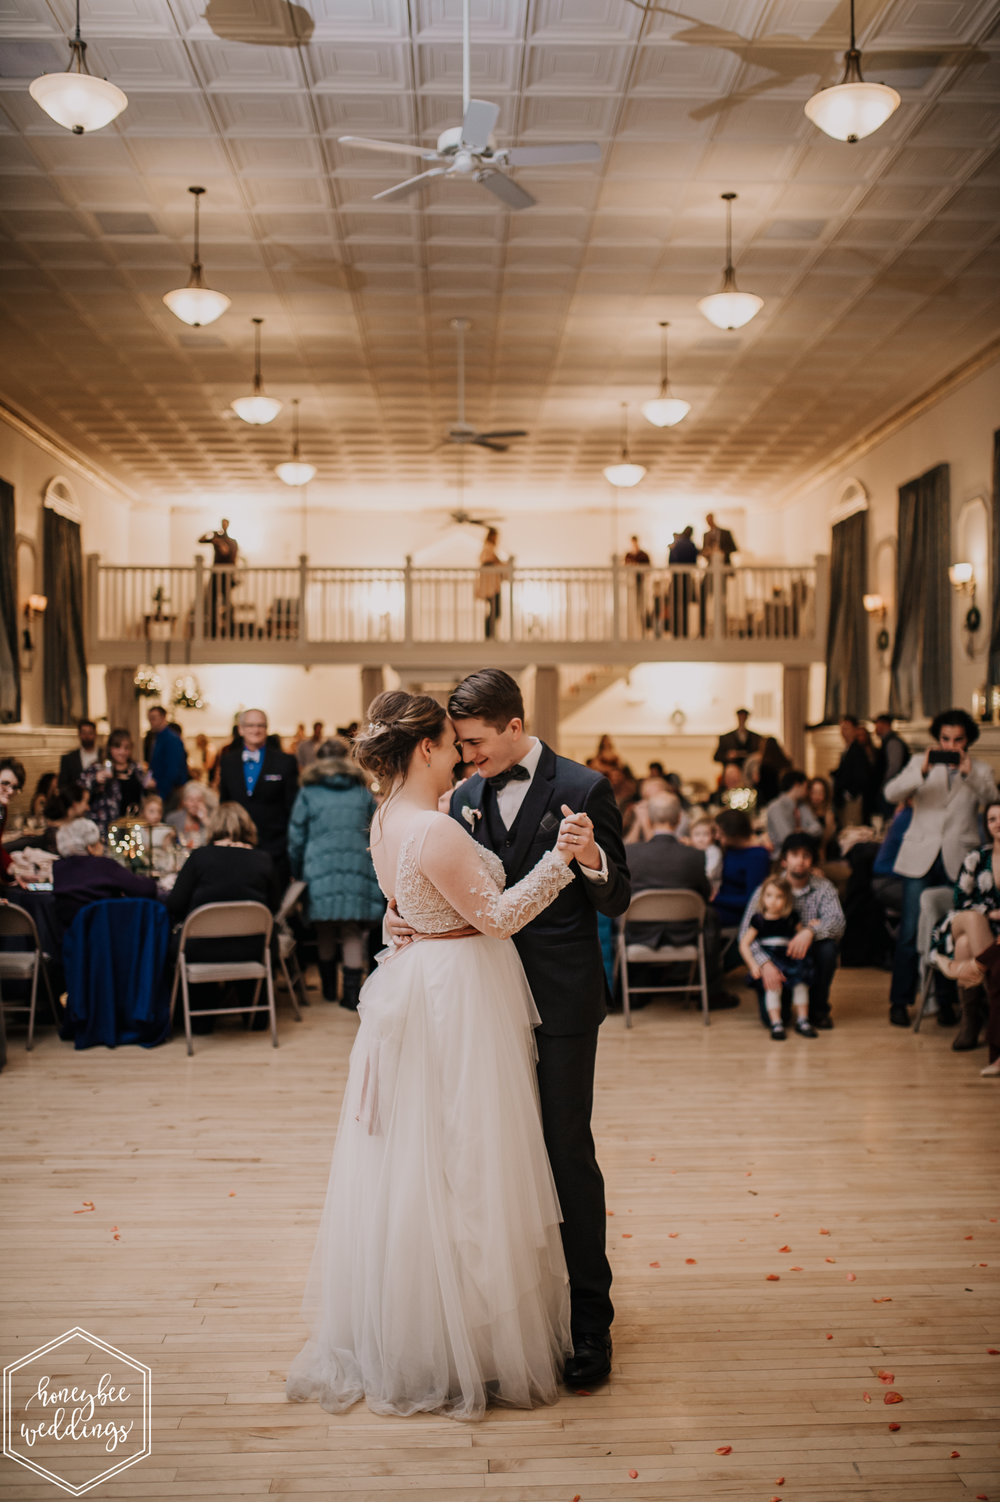 0295Montana Wedding Photographer_Montana winter wedding_Wedding at Fort Missoula_Meri & Carter_January 19, 2018-808.jpg